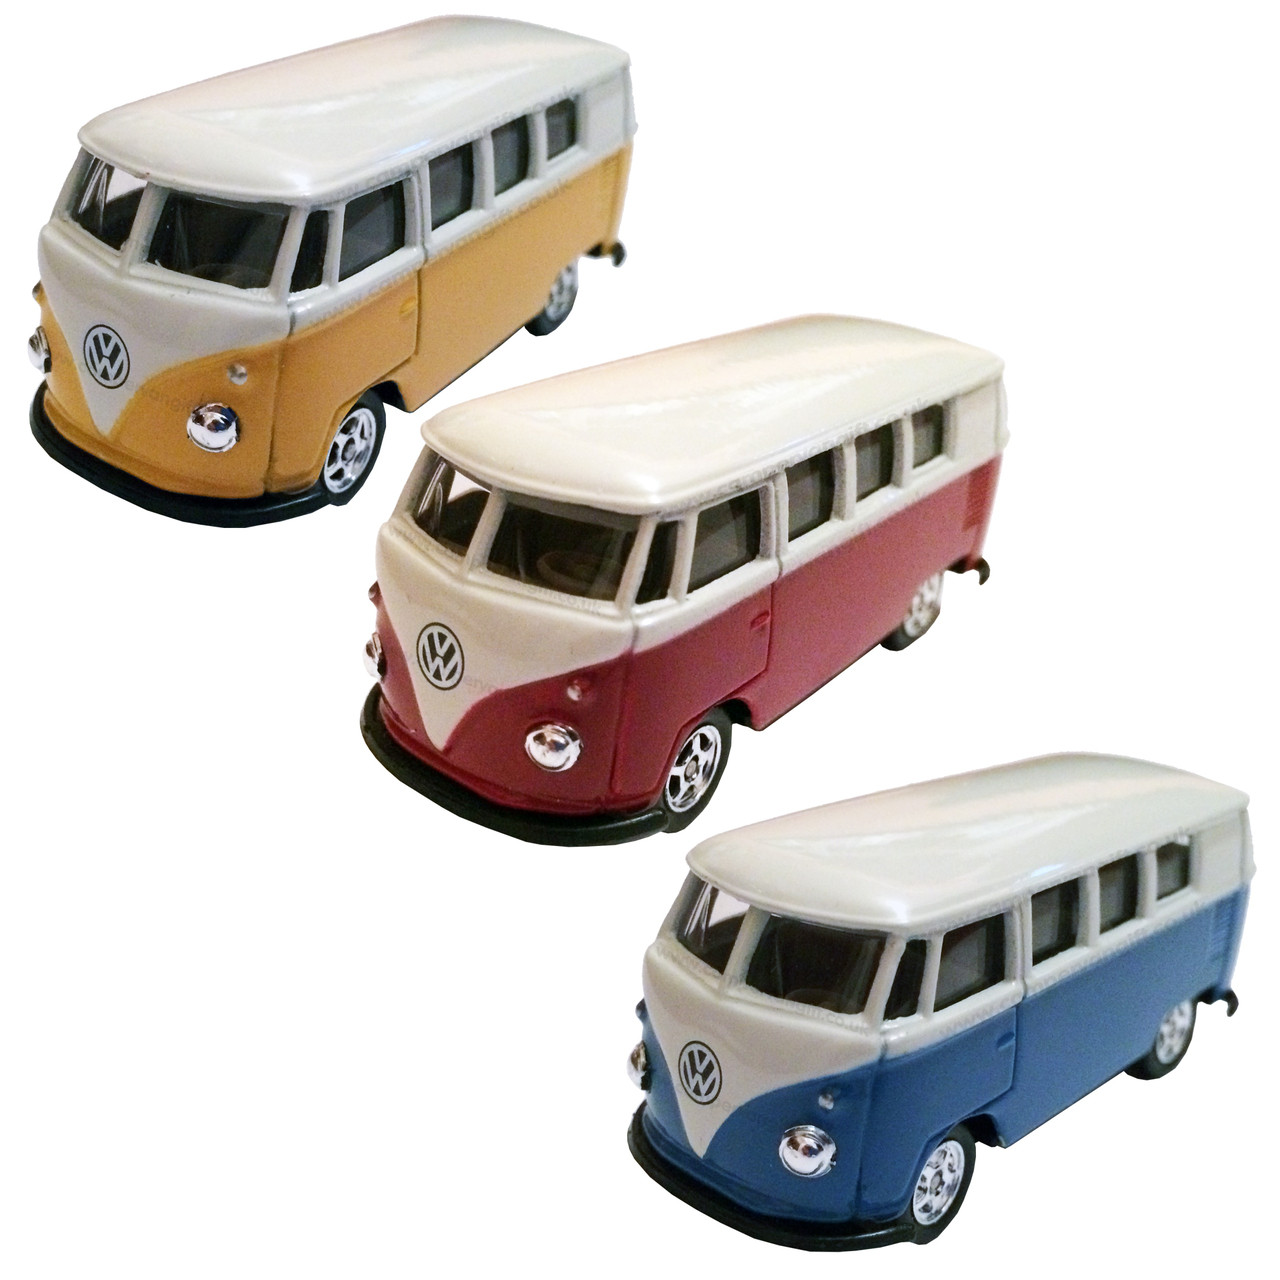 Best Van Camper >> VW Campervan Diecast Pocket Toy Model - Campervan Gift Ltd